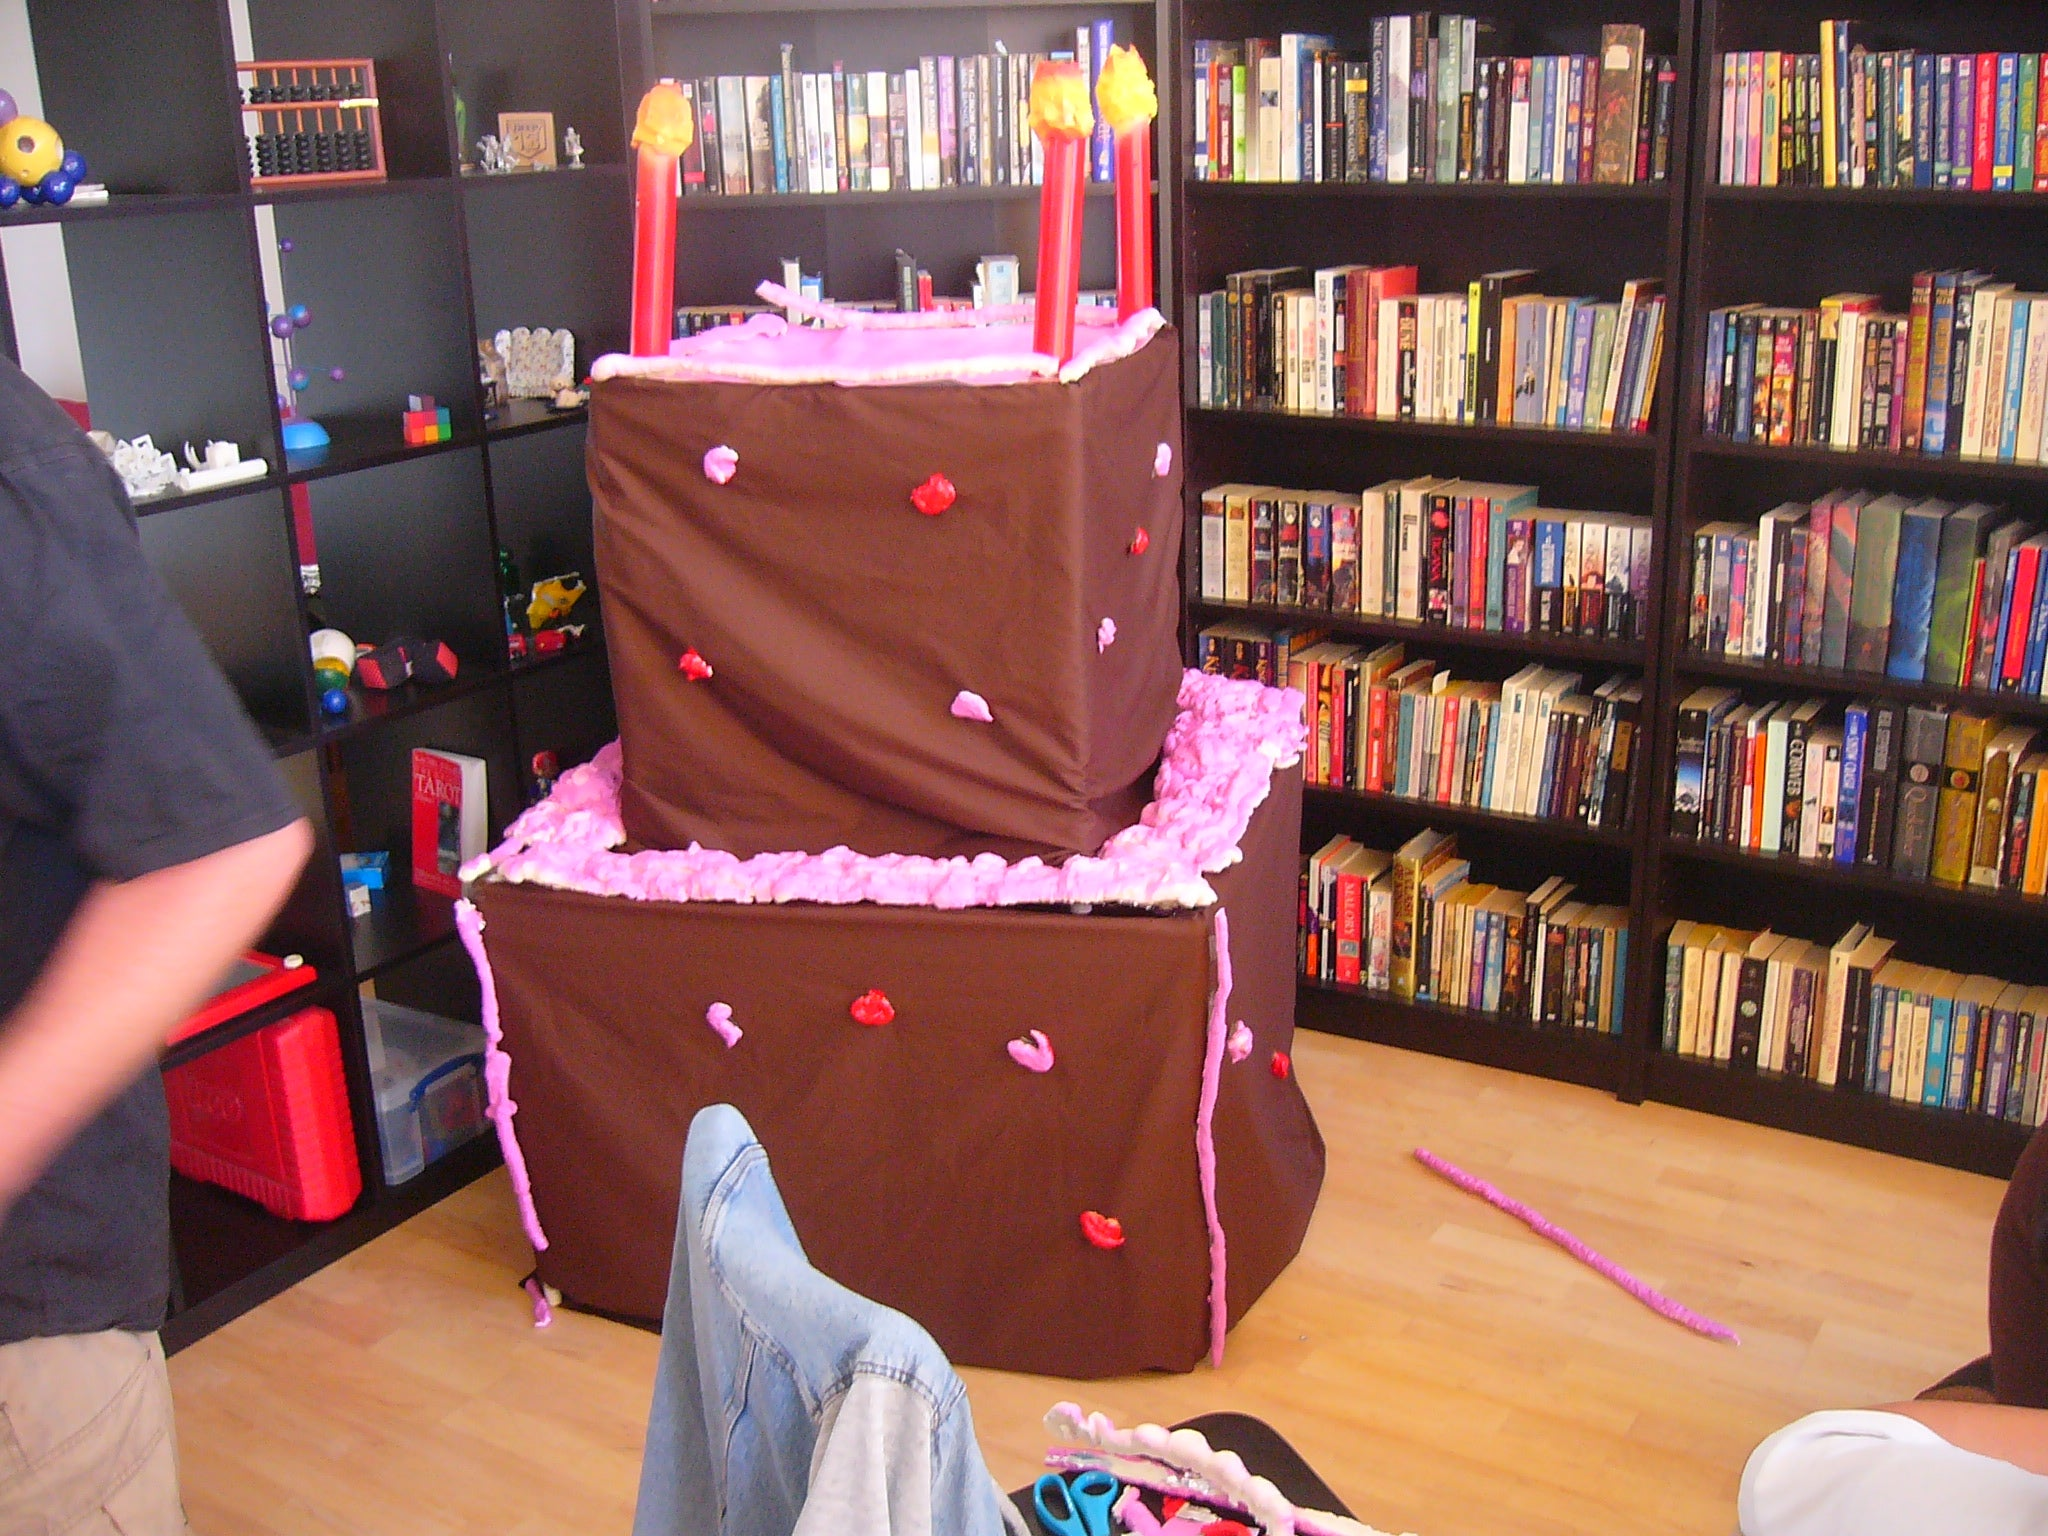 Astonishing How To Make A Stripper Cake 8 Steps Instructables Funny Birthday Cards Online Alyptdamsfinfo